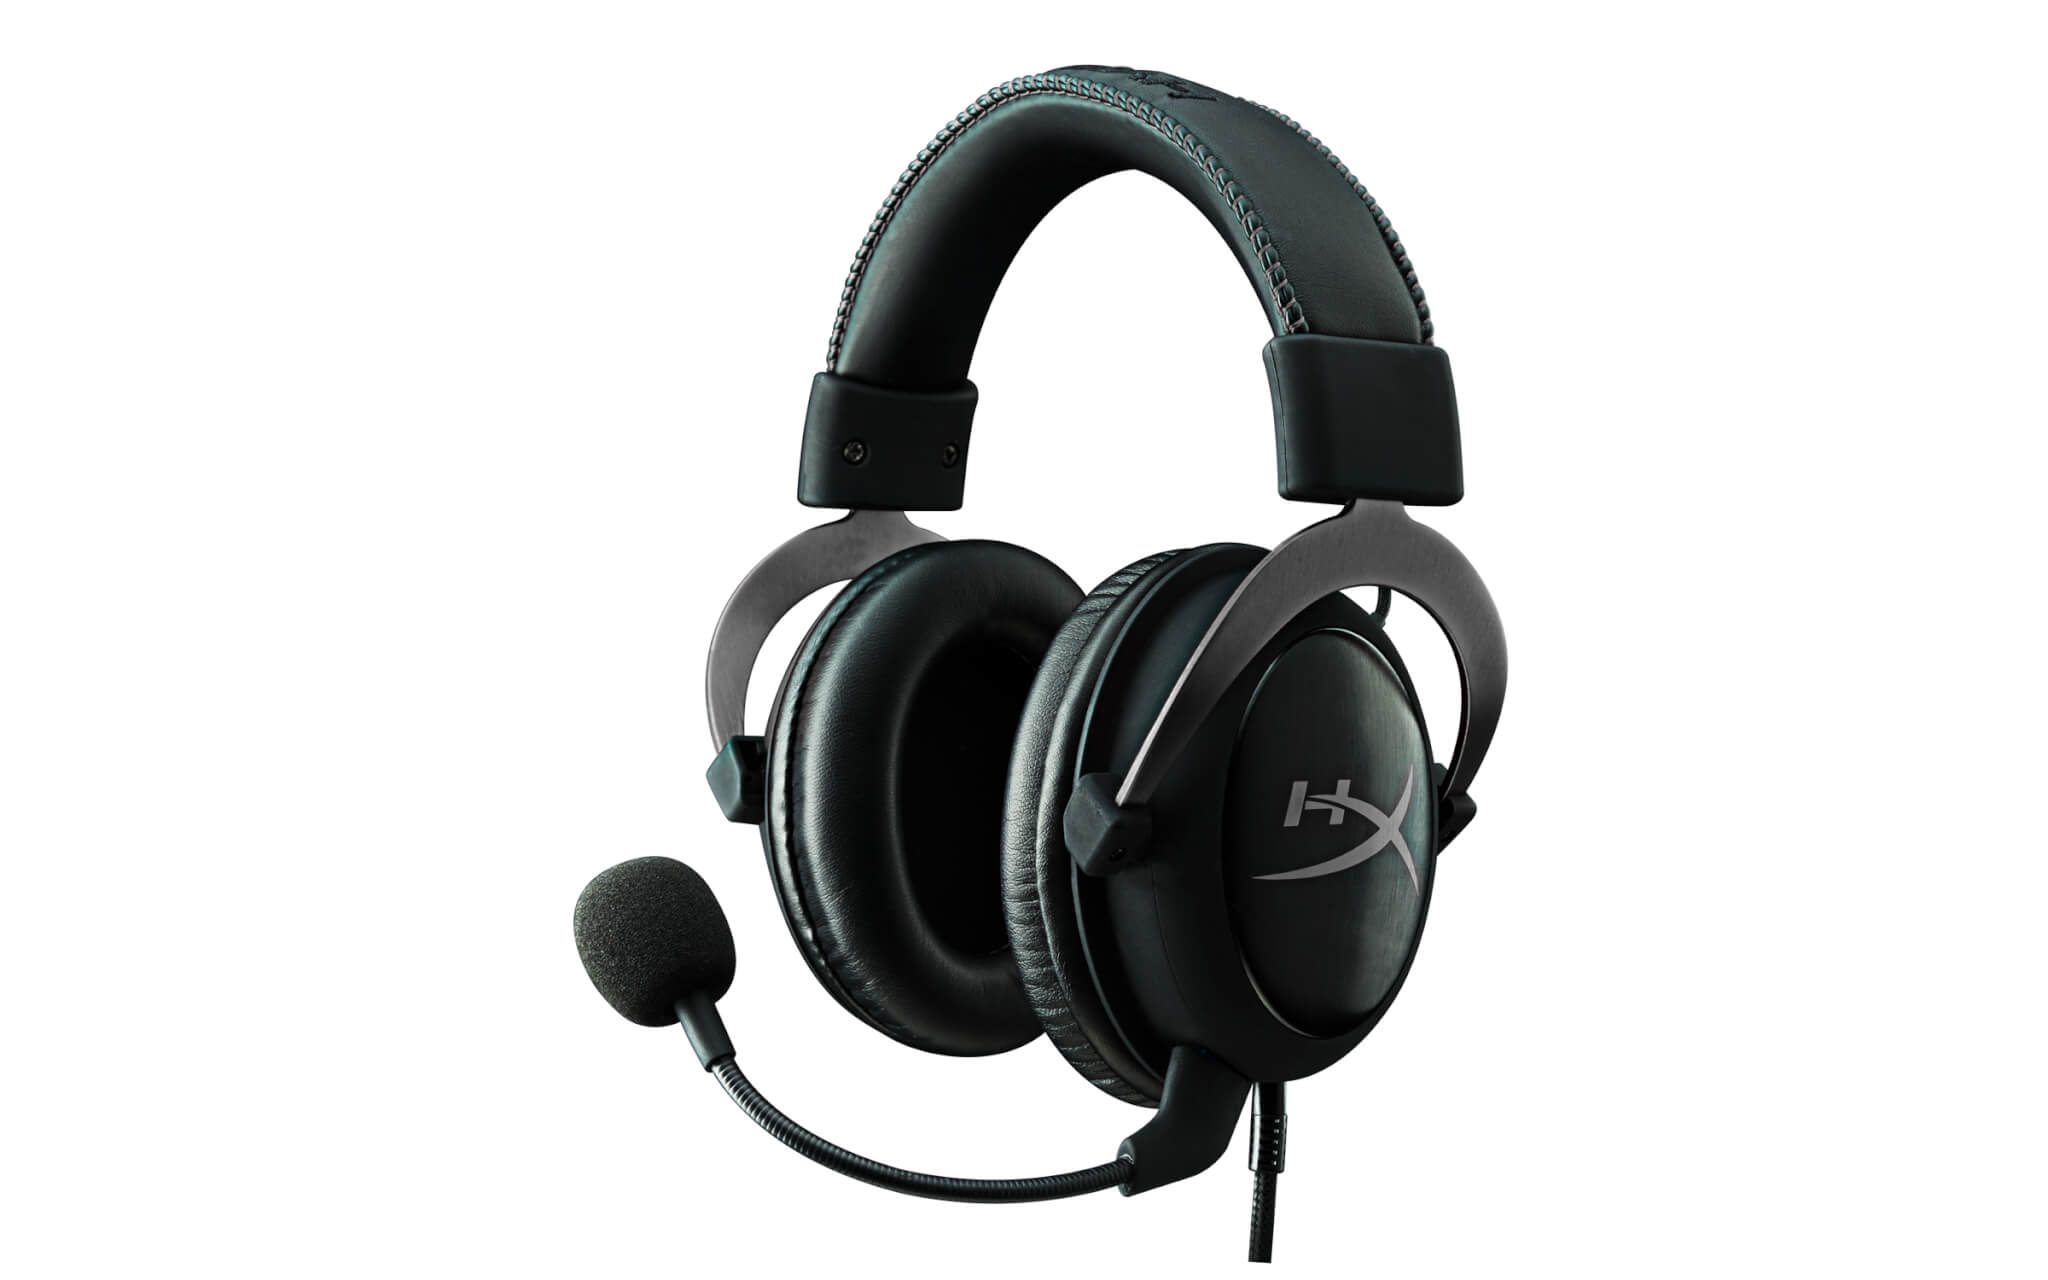 The HyperX Cloud II gaming headset.